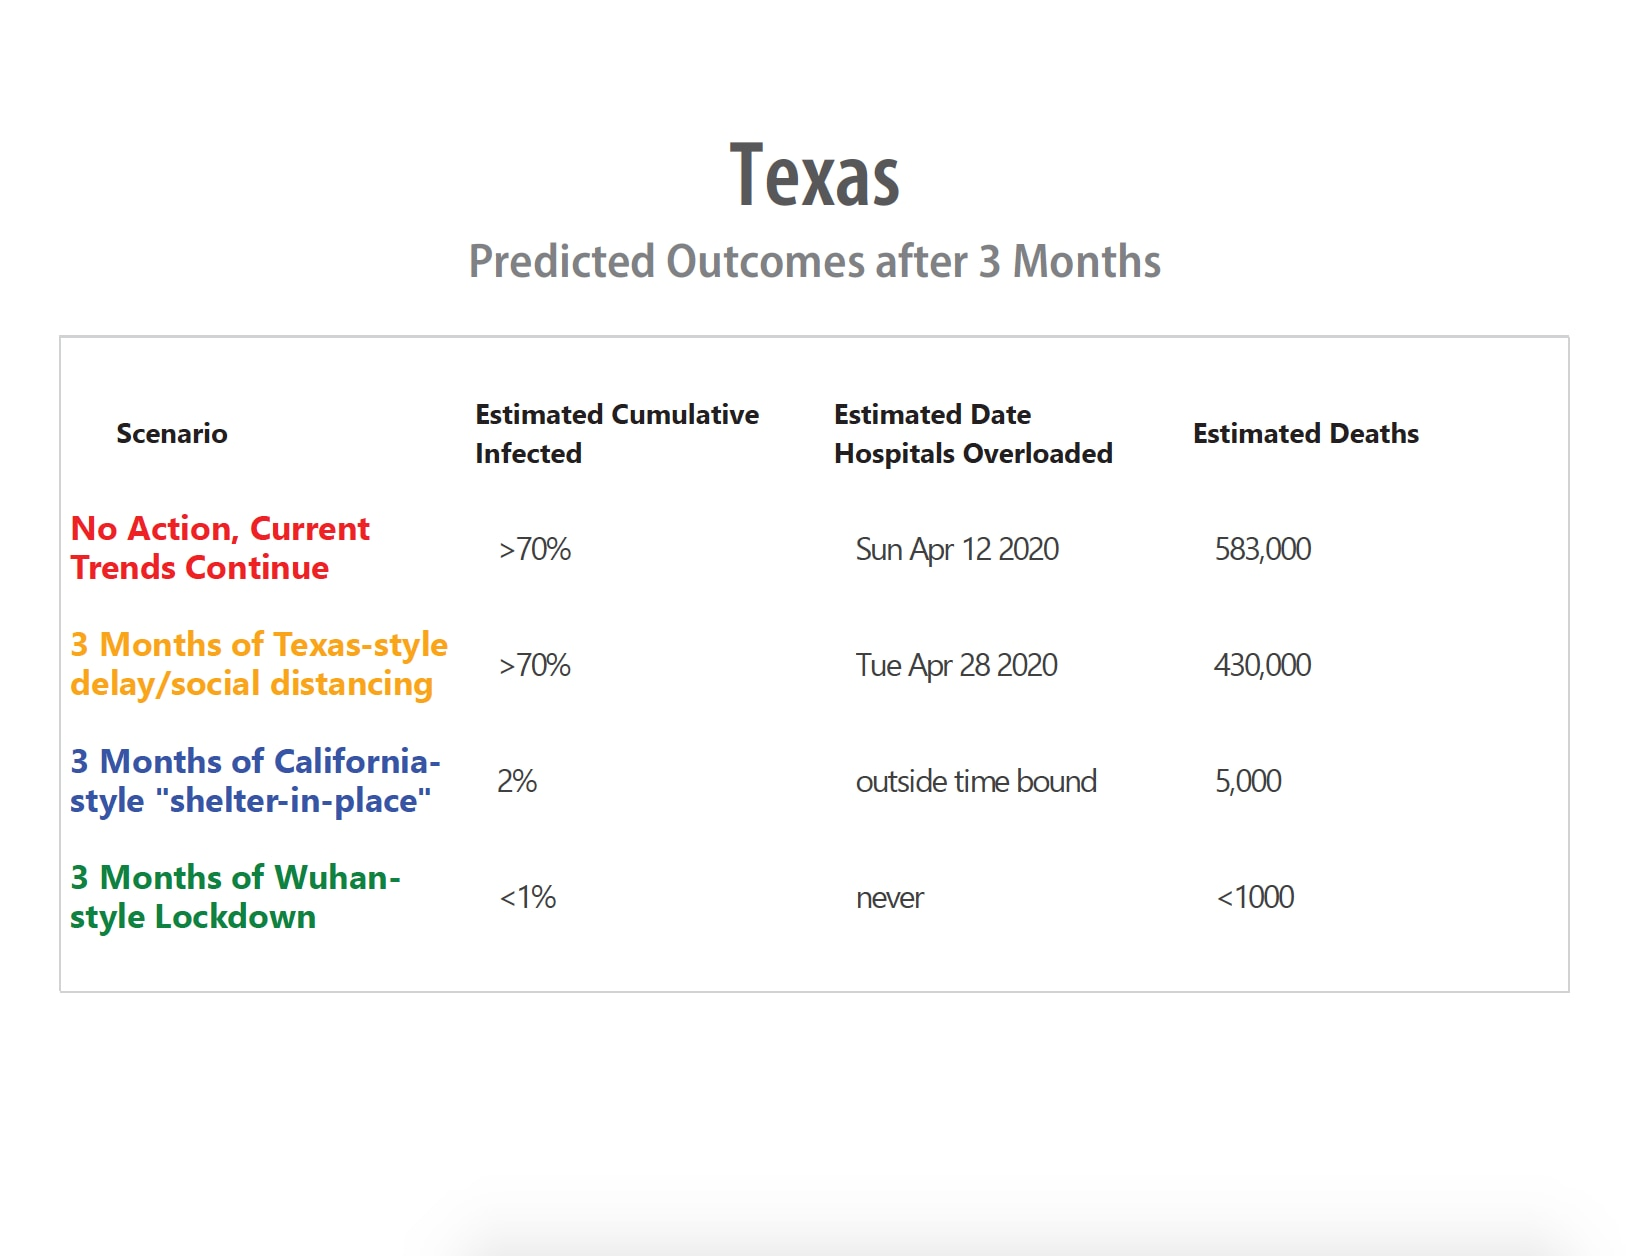 Dallas County officials shared this estimation of deaths across the state under varying levels of action to curb the spread of coronavirus. The estimations come from covidactnow.org, County Judge Clay Jenkins said.